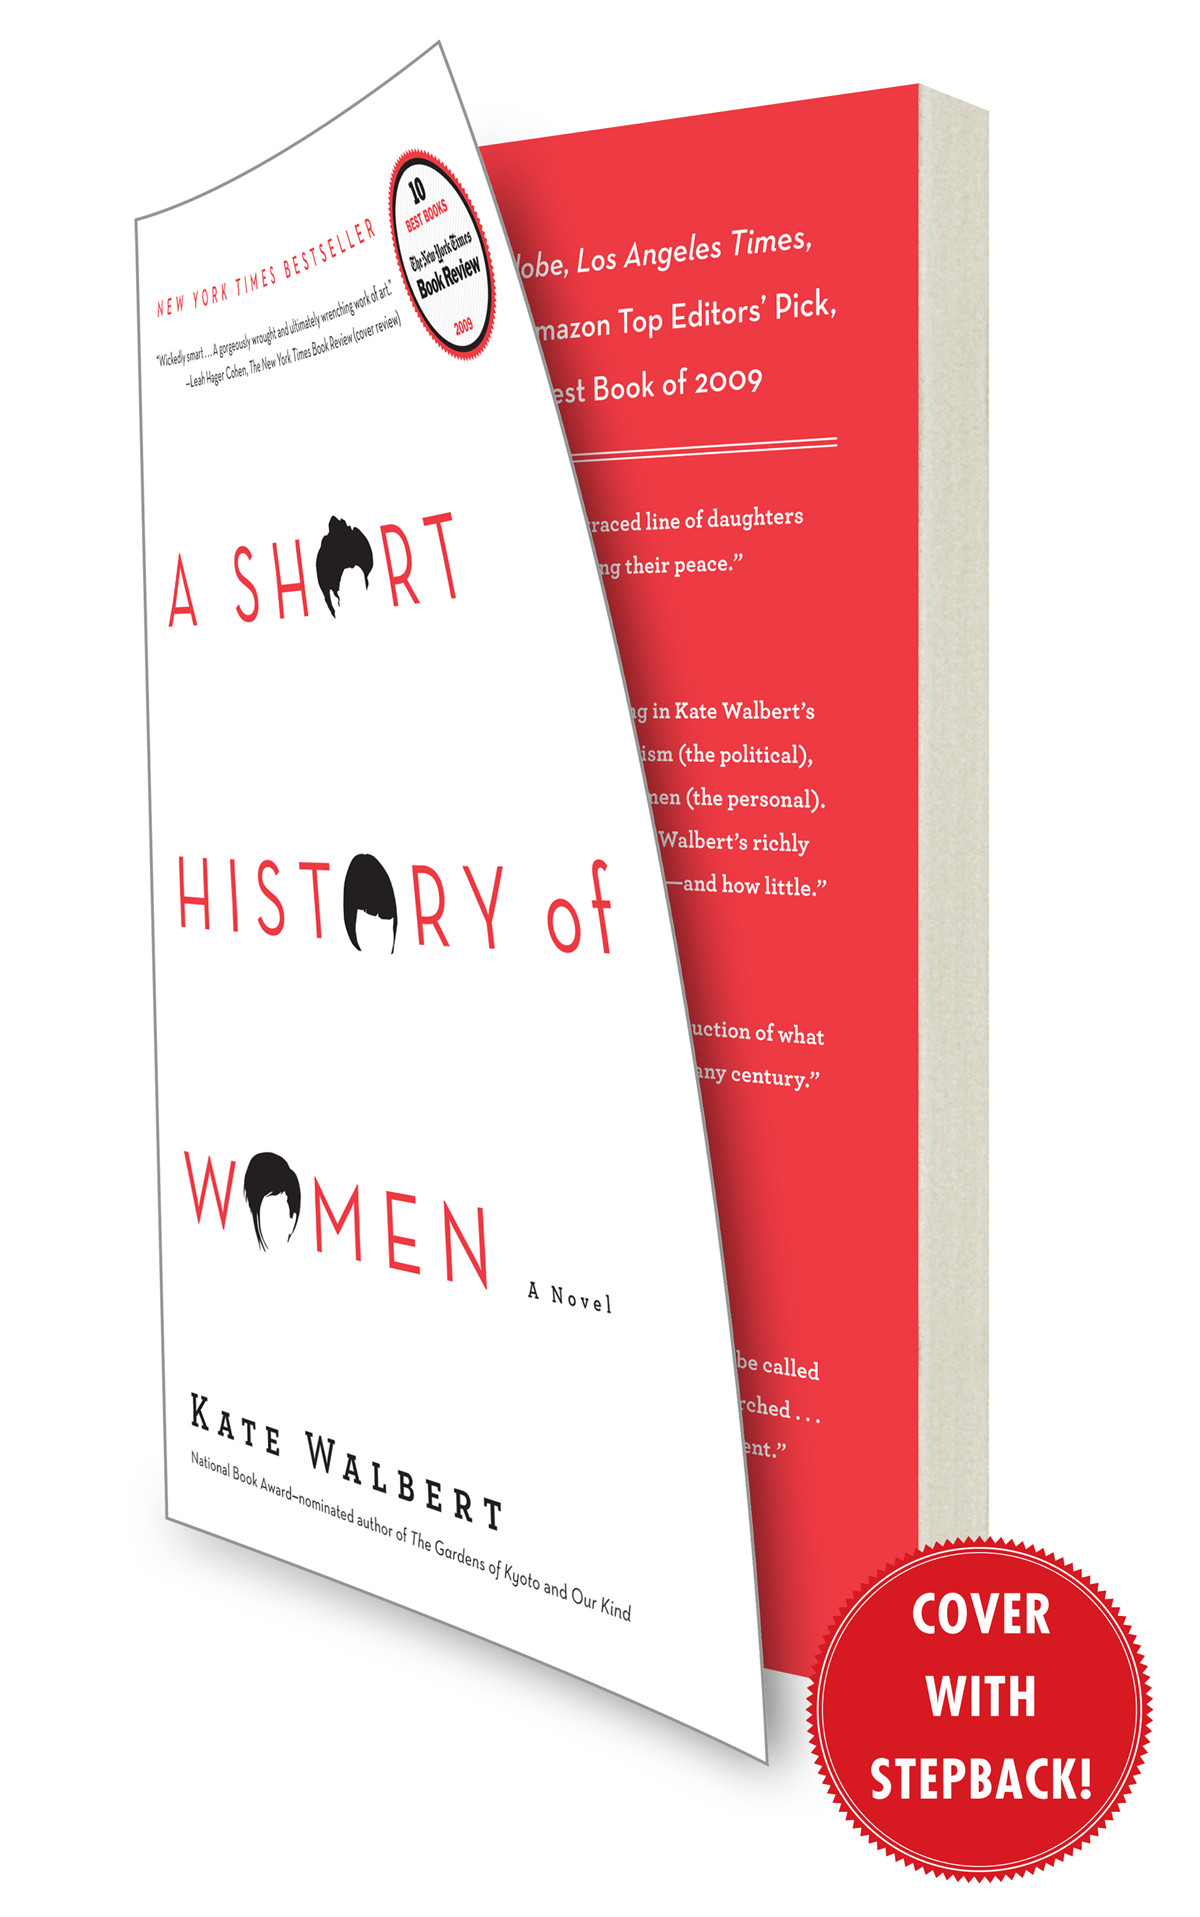 A short history of women 9781416594994.in01